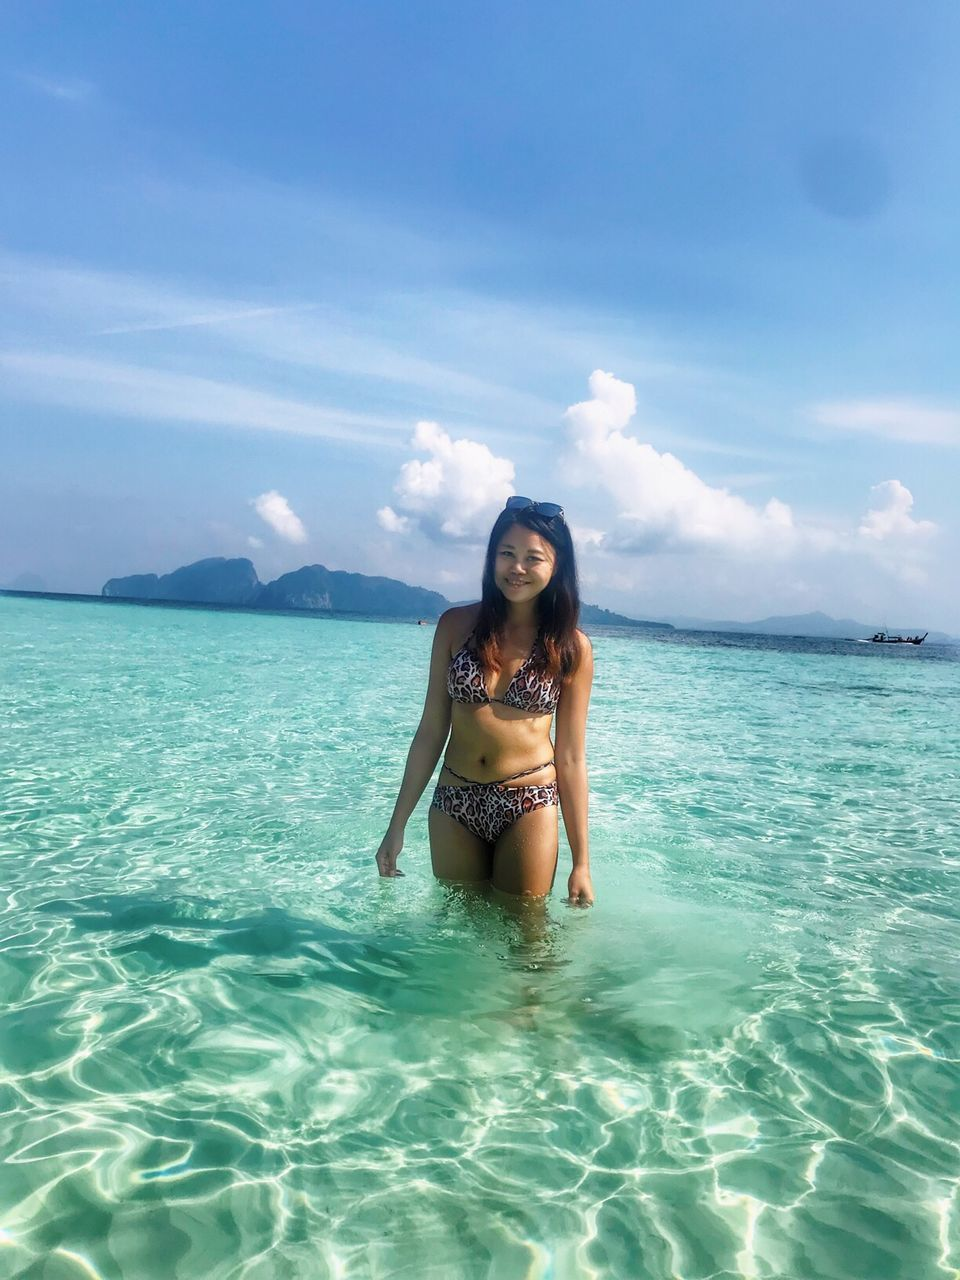 one person, young adult, sea, sky, water, young women, leisure activity, portrait, front view, lifestyles, beauty in nature, beautiful woman, real people, beauty, adult, standing, looking at camera, swimwear, scenics - nature, hair, hairstyle, turquoise colored, horizon over water, outdoors